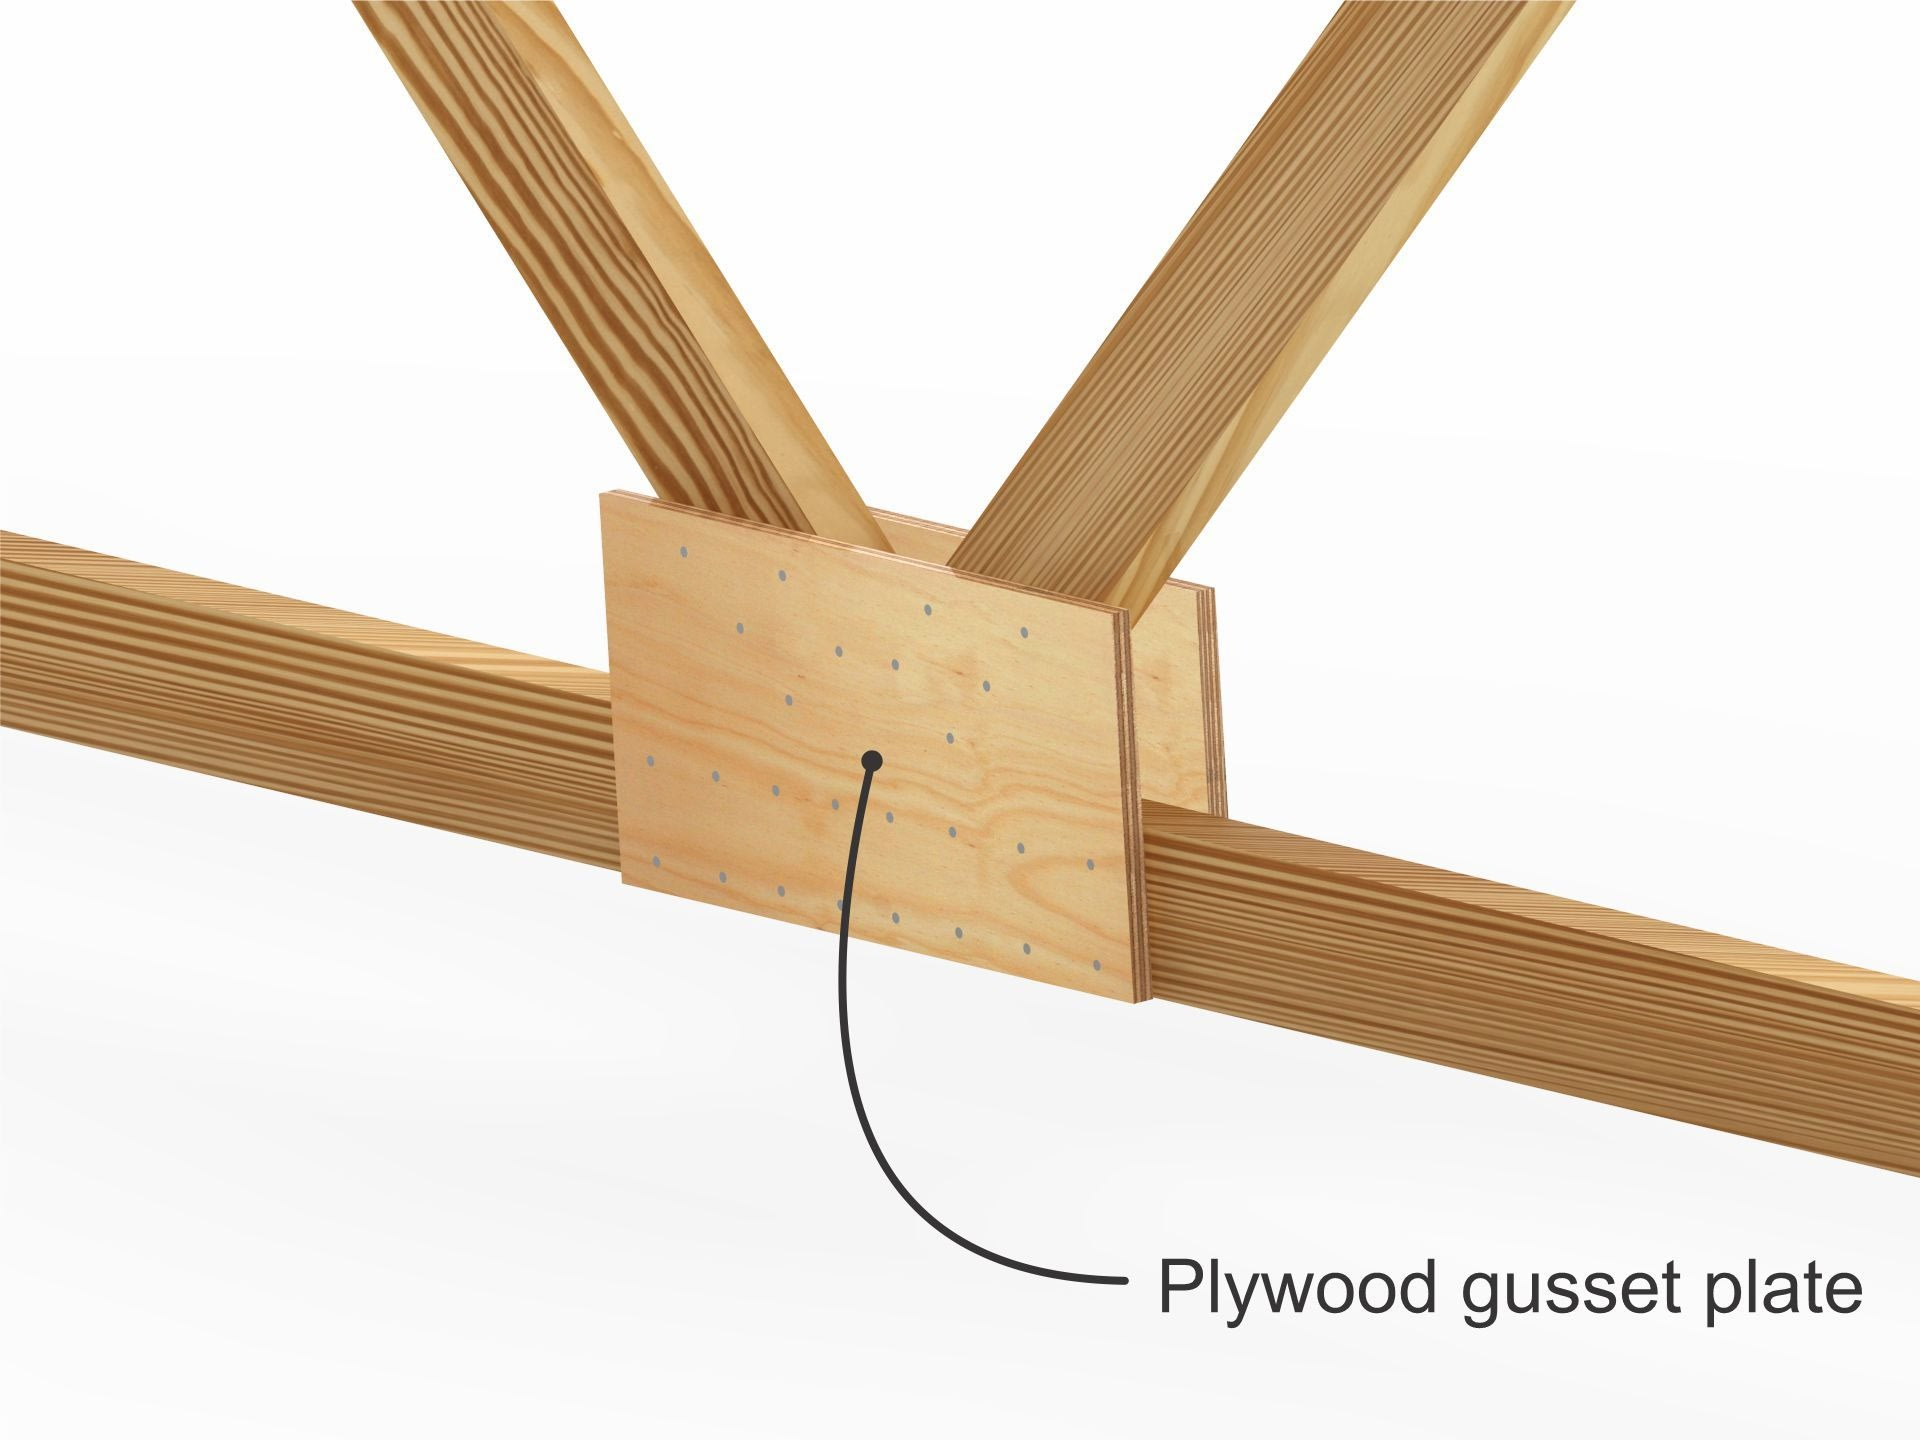 Plywood gusset plate